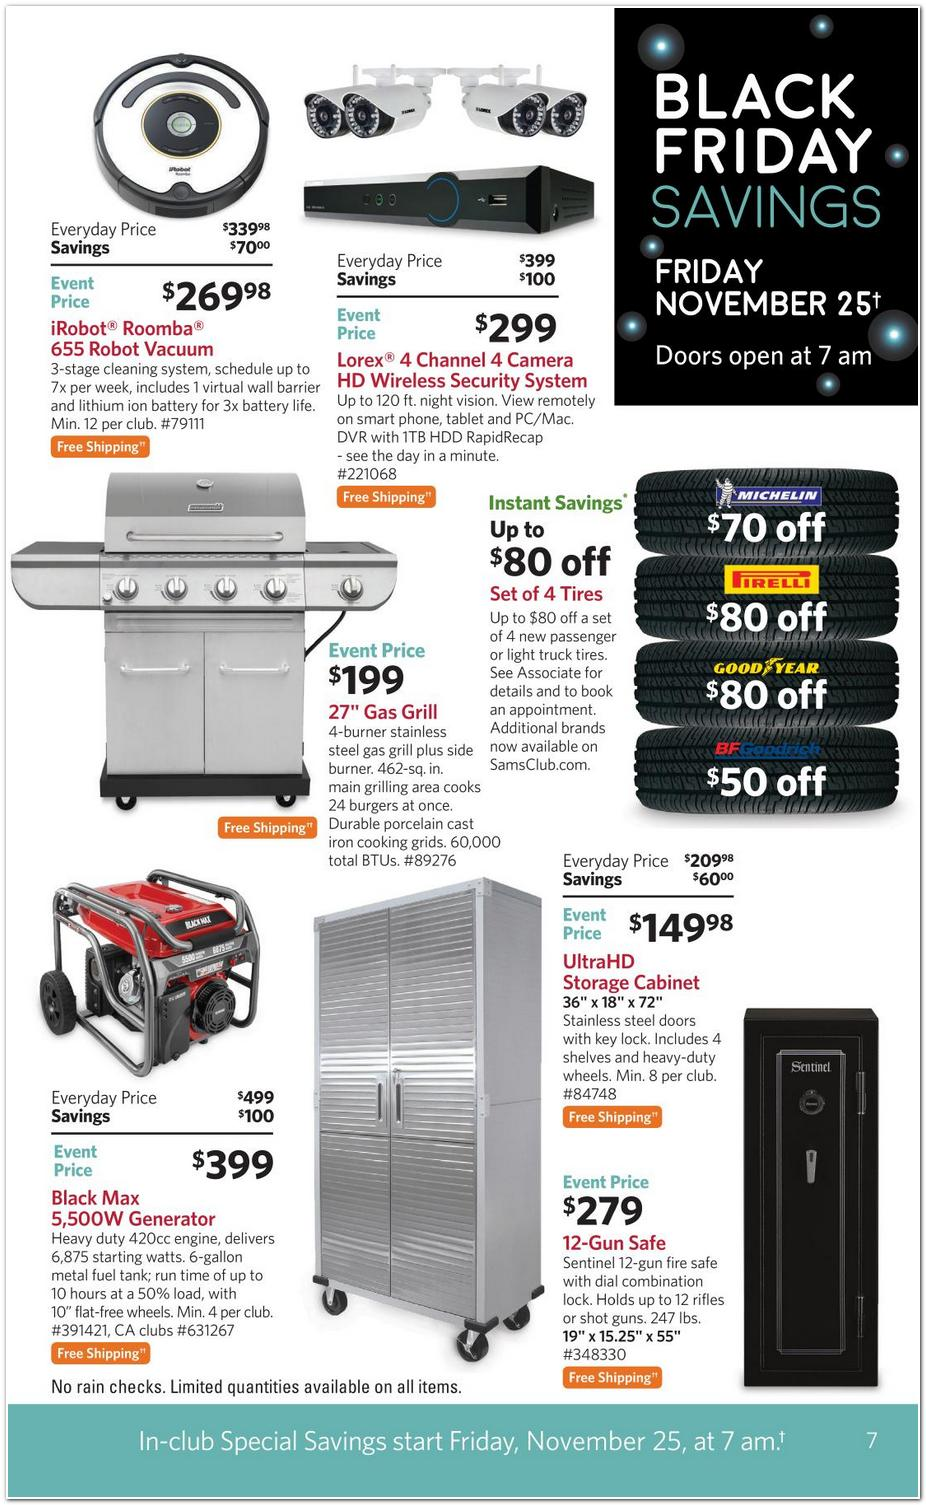 sams-club-black-friday-2016-ad-scan-p-7